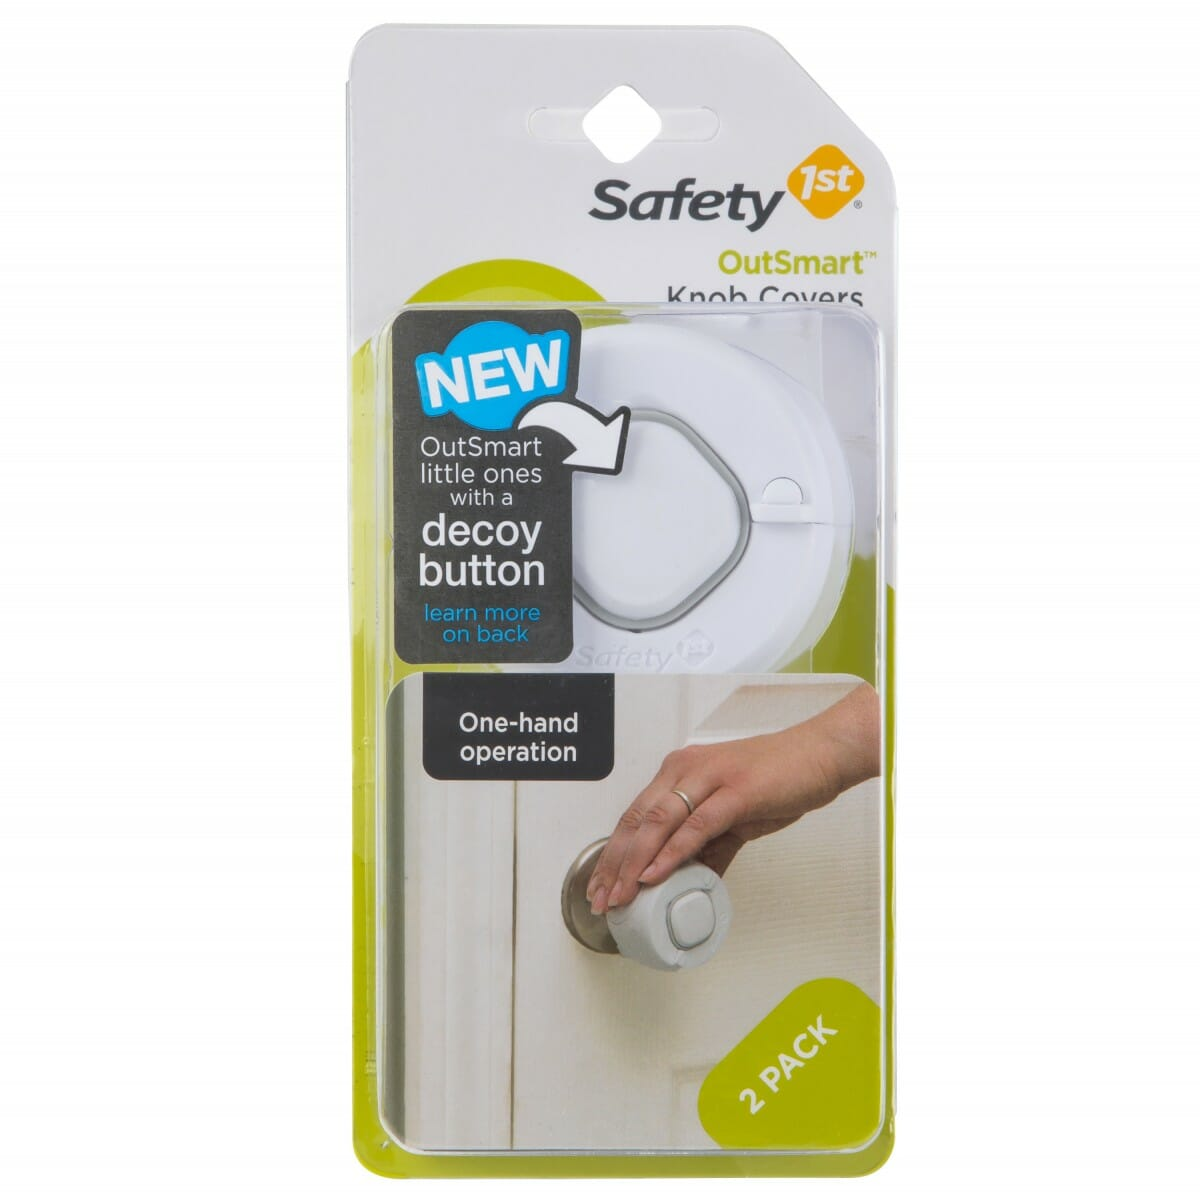 Safety 1st OutSmart Knob Covers